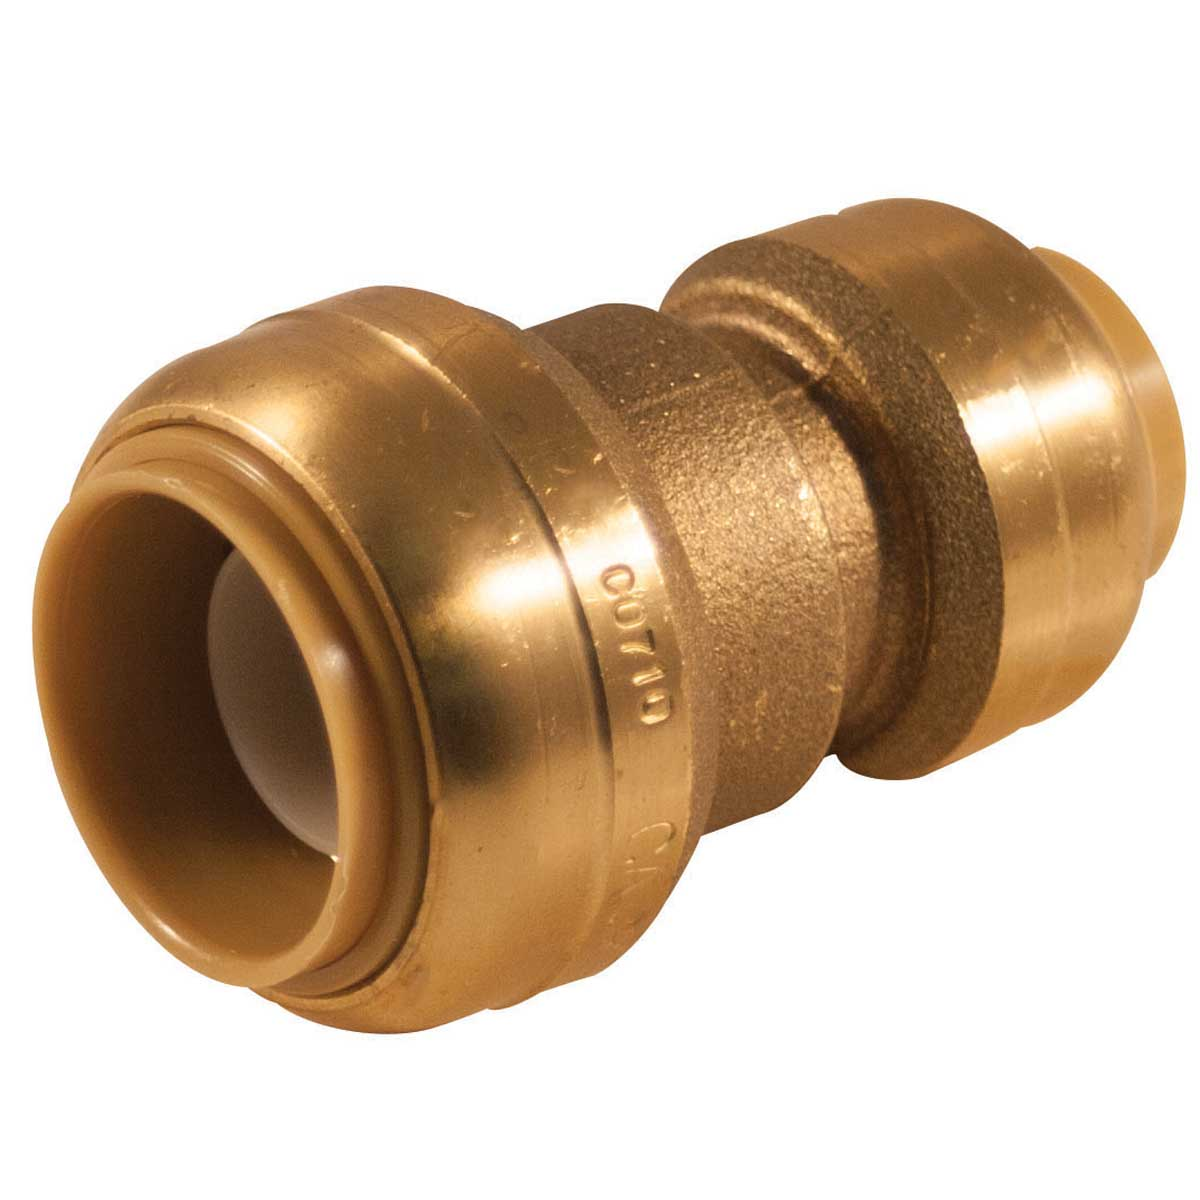 3/4-in x 1/2-in Push Fit Reducing Coupling